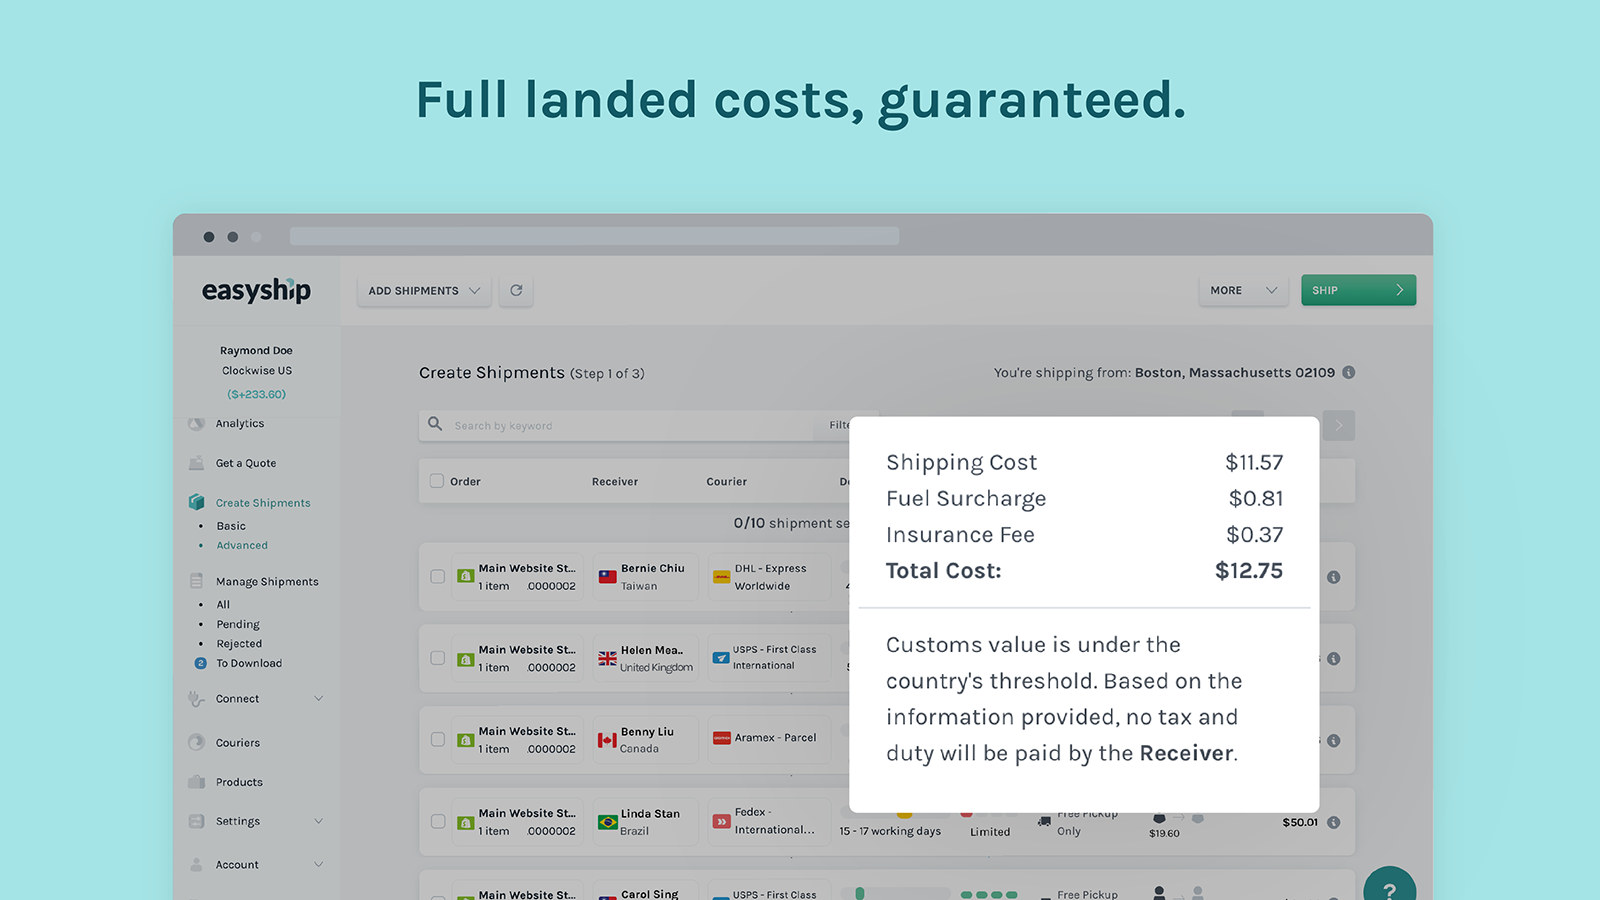 Easyship offers Fully Landed Costs & Automated Taxes and Duties